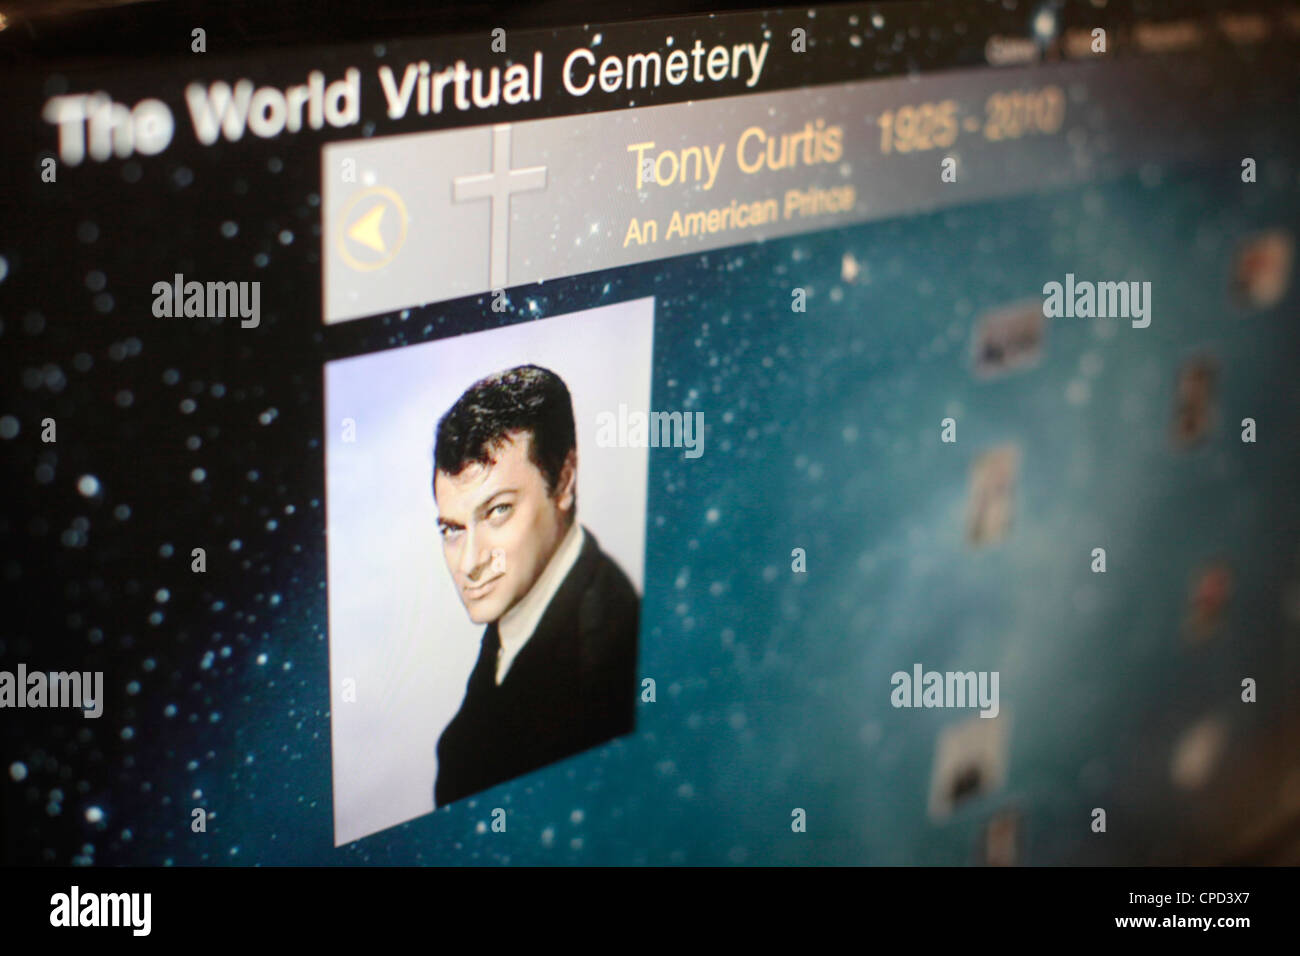 I-Tomb virtual cemetery, Paris, France, Europe - Stock Image